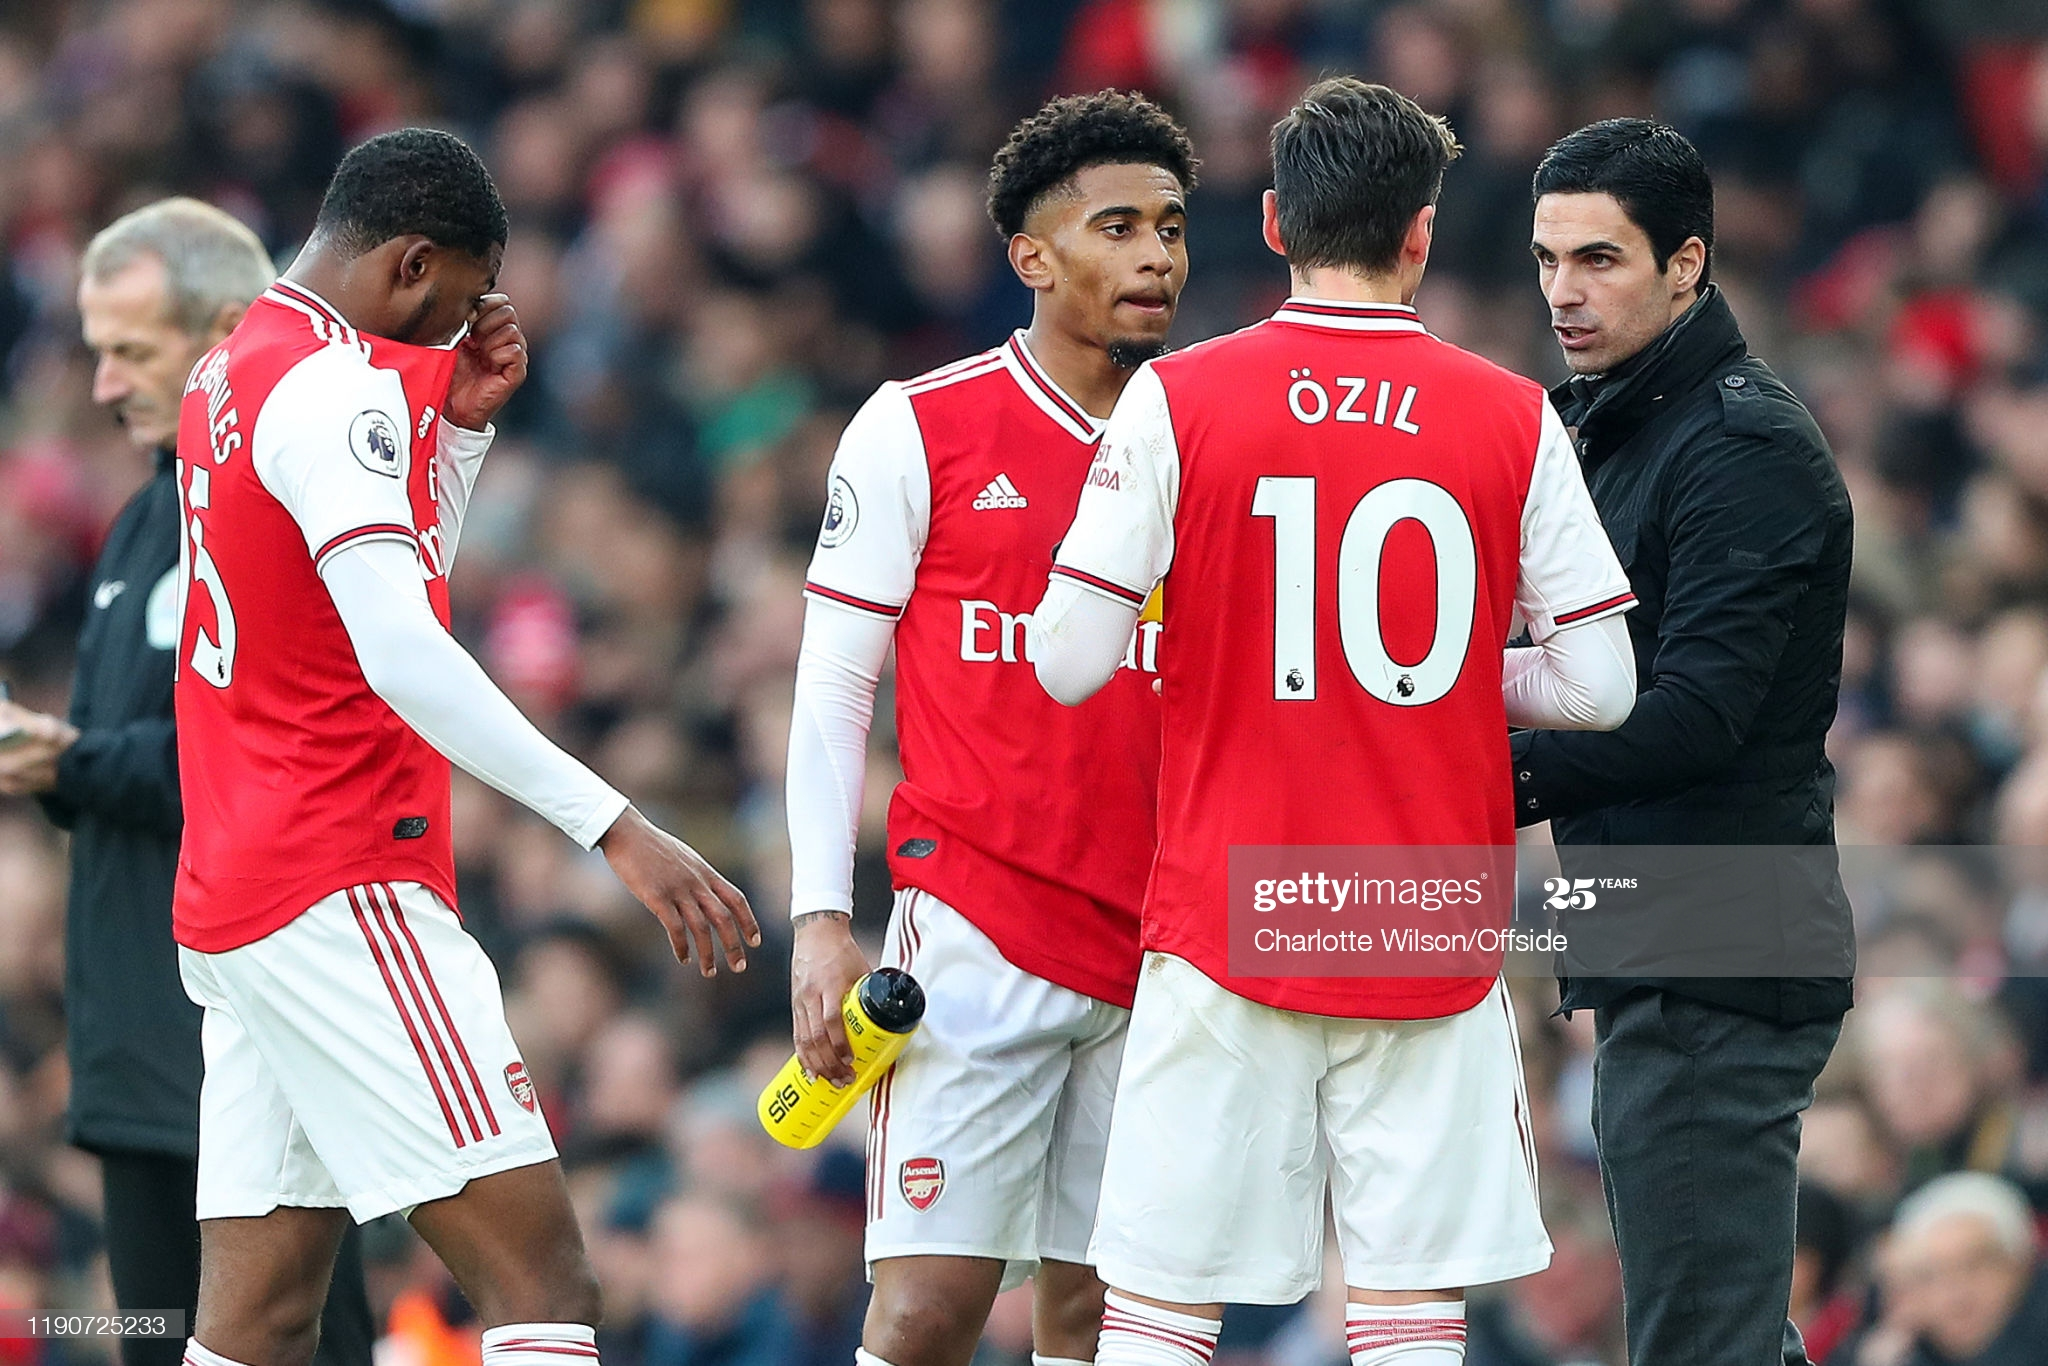 Mikel Arteta makes huge decision on Maitland-Niles and Kieran Tierney future